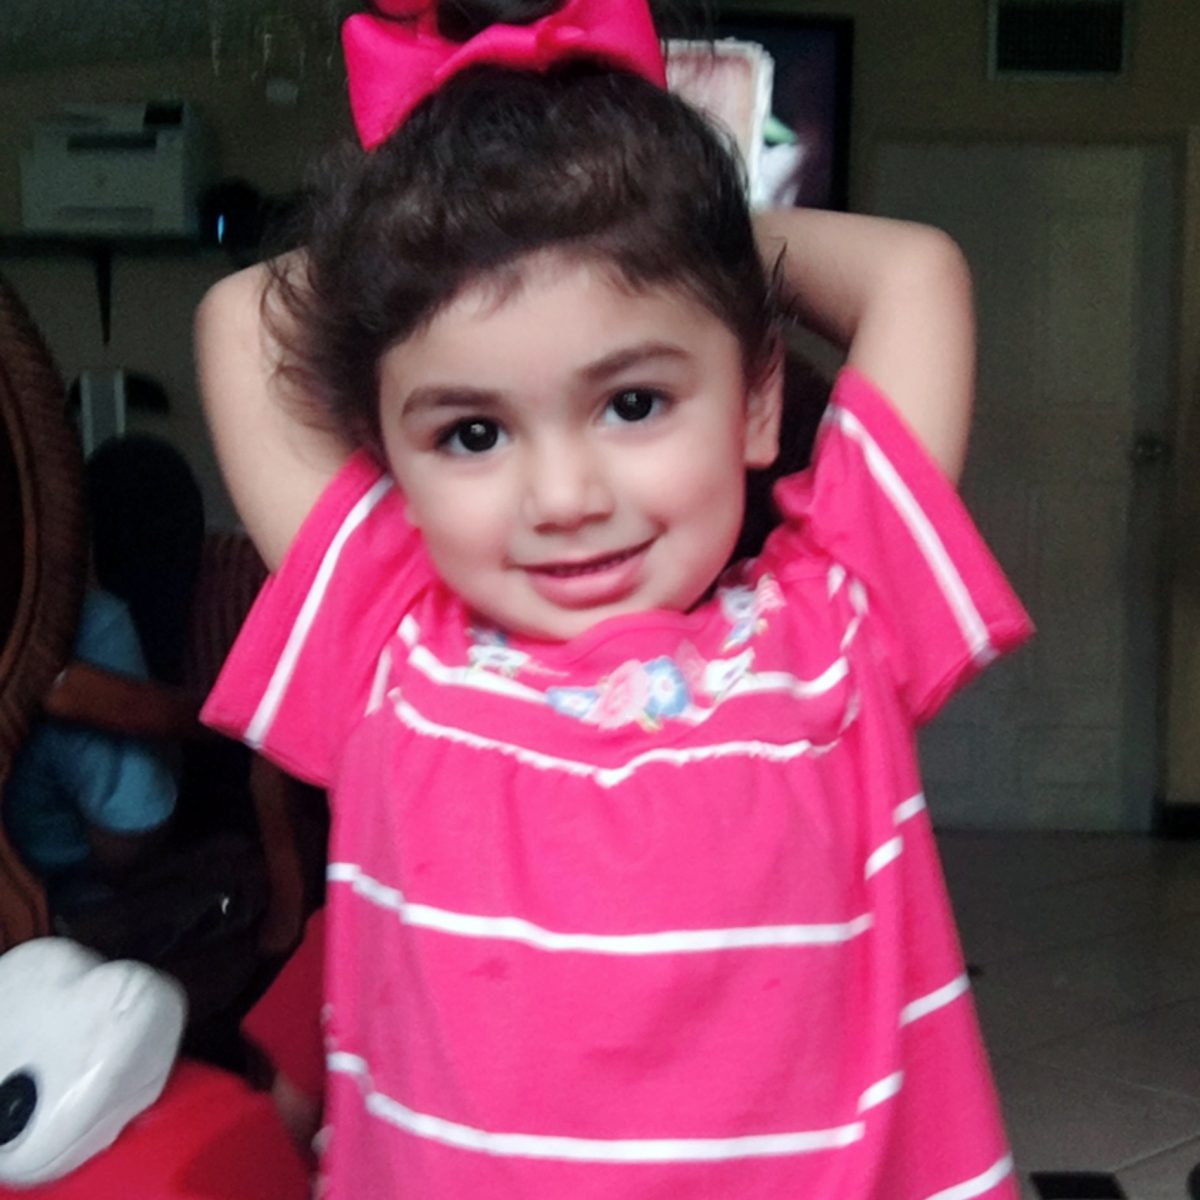 Florida toddler in need of rare blood